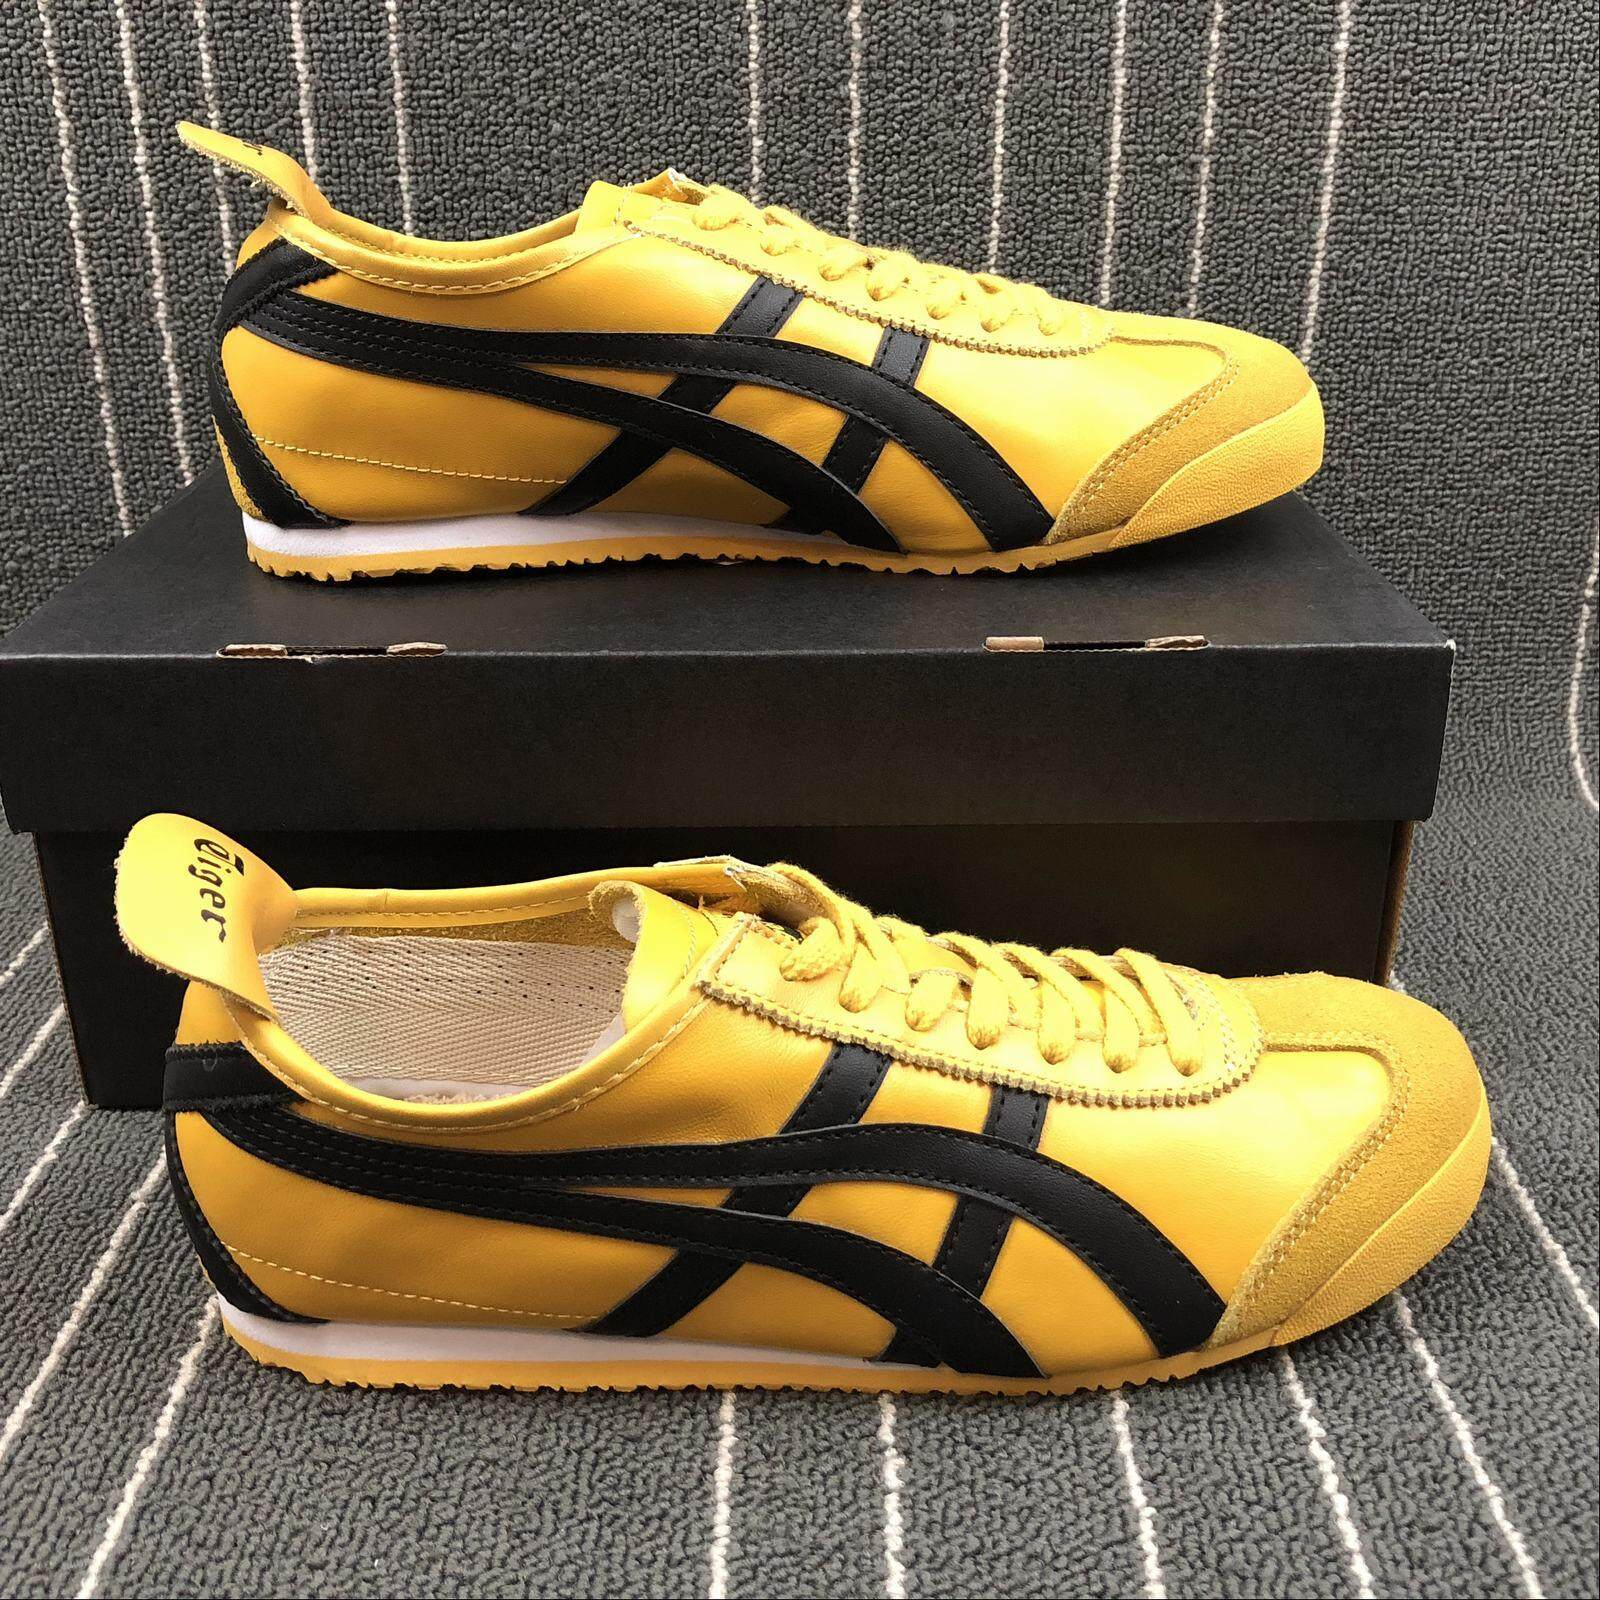 new style 30468 84875 Asics Onitsuka tiger MEXICO 66 DL408-0490 Men's/Women's Sport Fashion  Running Shoes Sneakers (HIGHT QUALITY) ETA -Delivery 7-14 days (Pre Order)